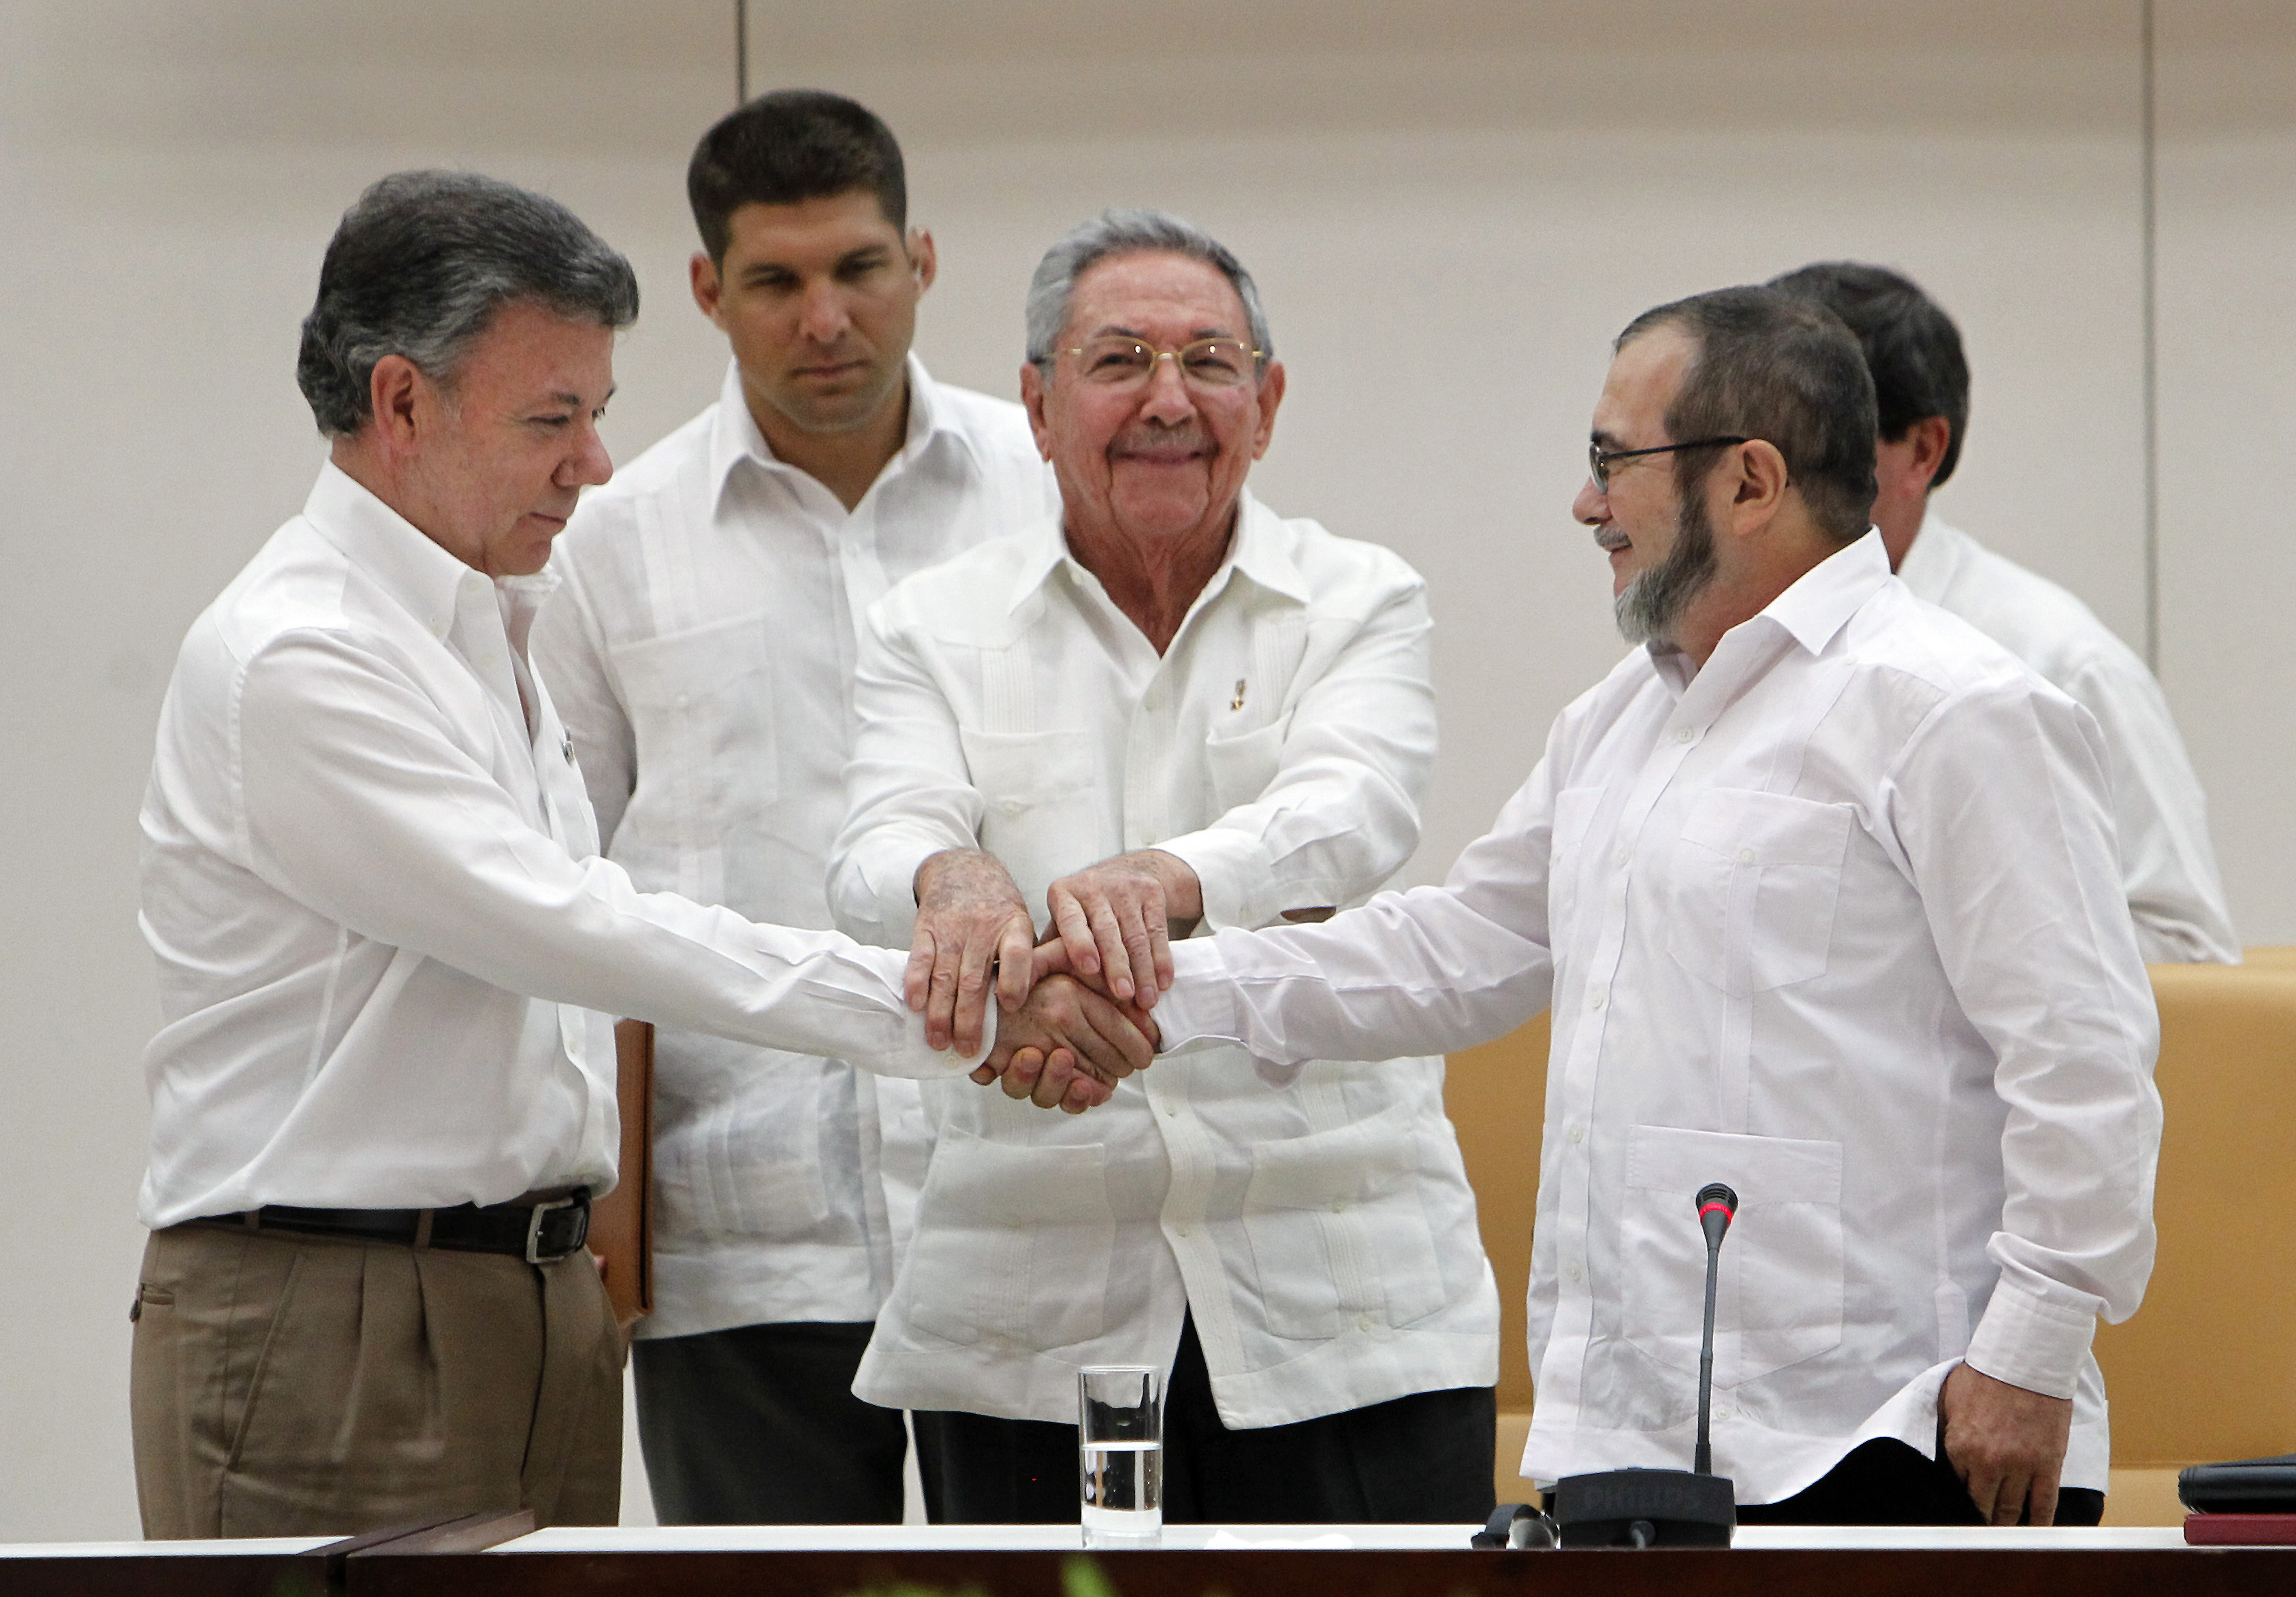 Juan Manuel Santos, president of Colombia (L), Raul Castro, President of Cuba (C) and Rodrigo Londoño, known as  Timoshenko , top leader of the Revolutionary Armed Forces of Colombia (FARC) , shake hands during a meeting about transitional justice agreement on Sept. 23, 2015 in Havana, Cuba.